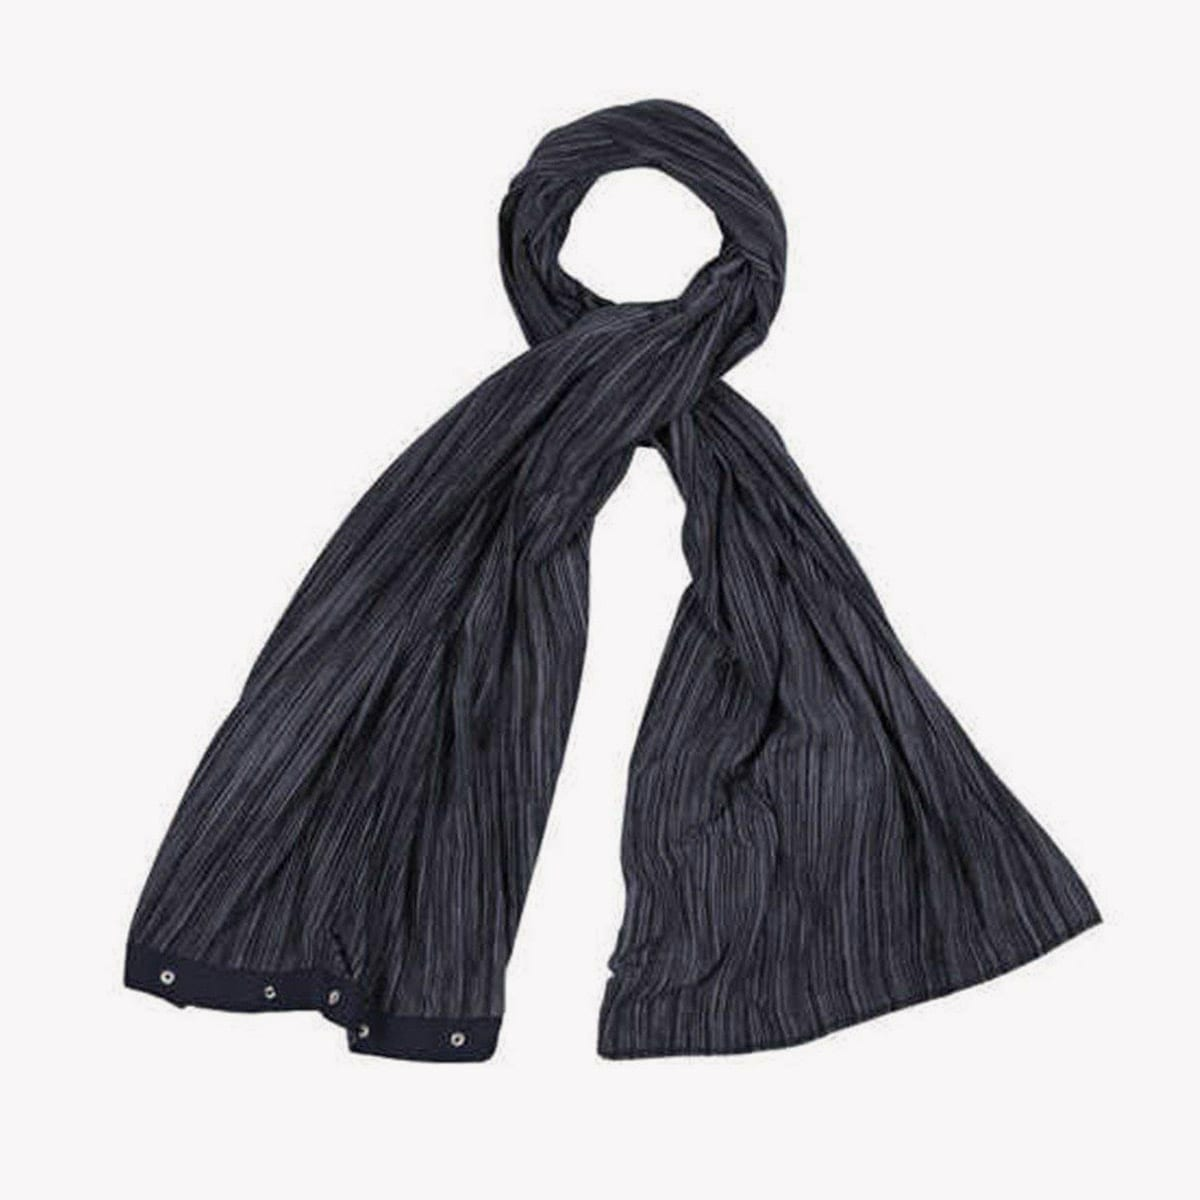 70aead6cc5f The Best Travel Scarves for Chilly Airplanes + Cold Destinations ...